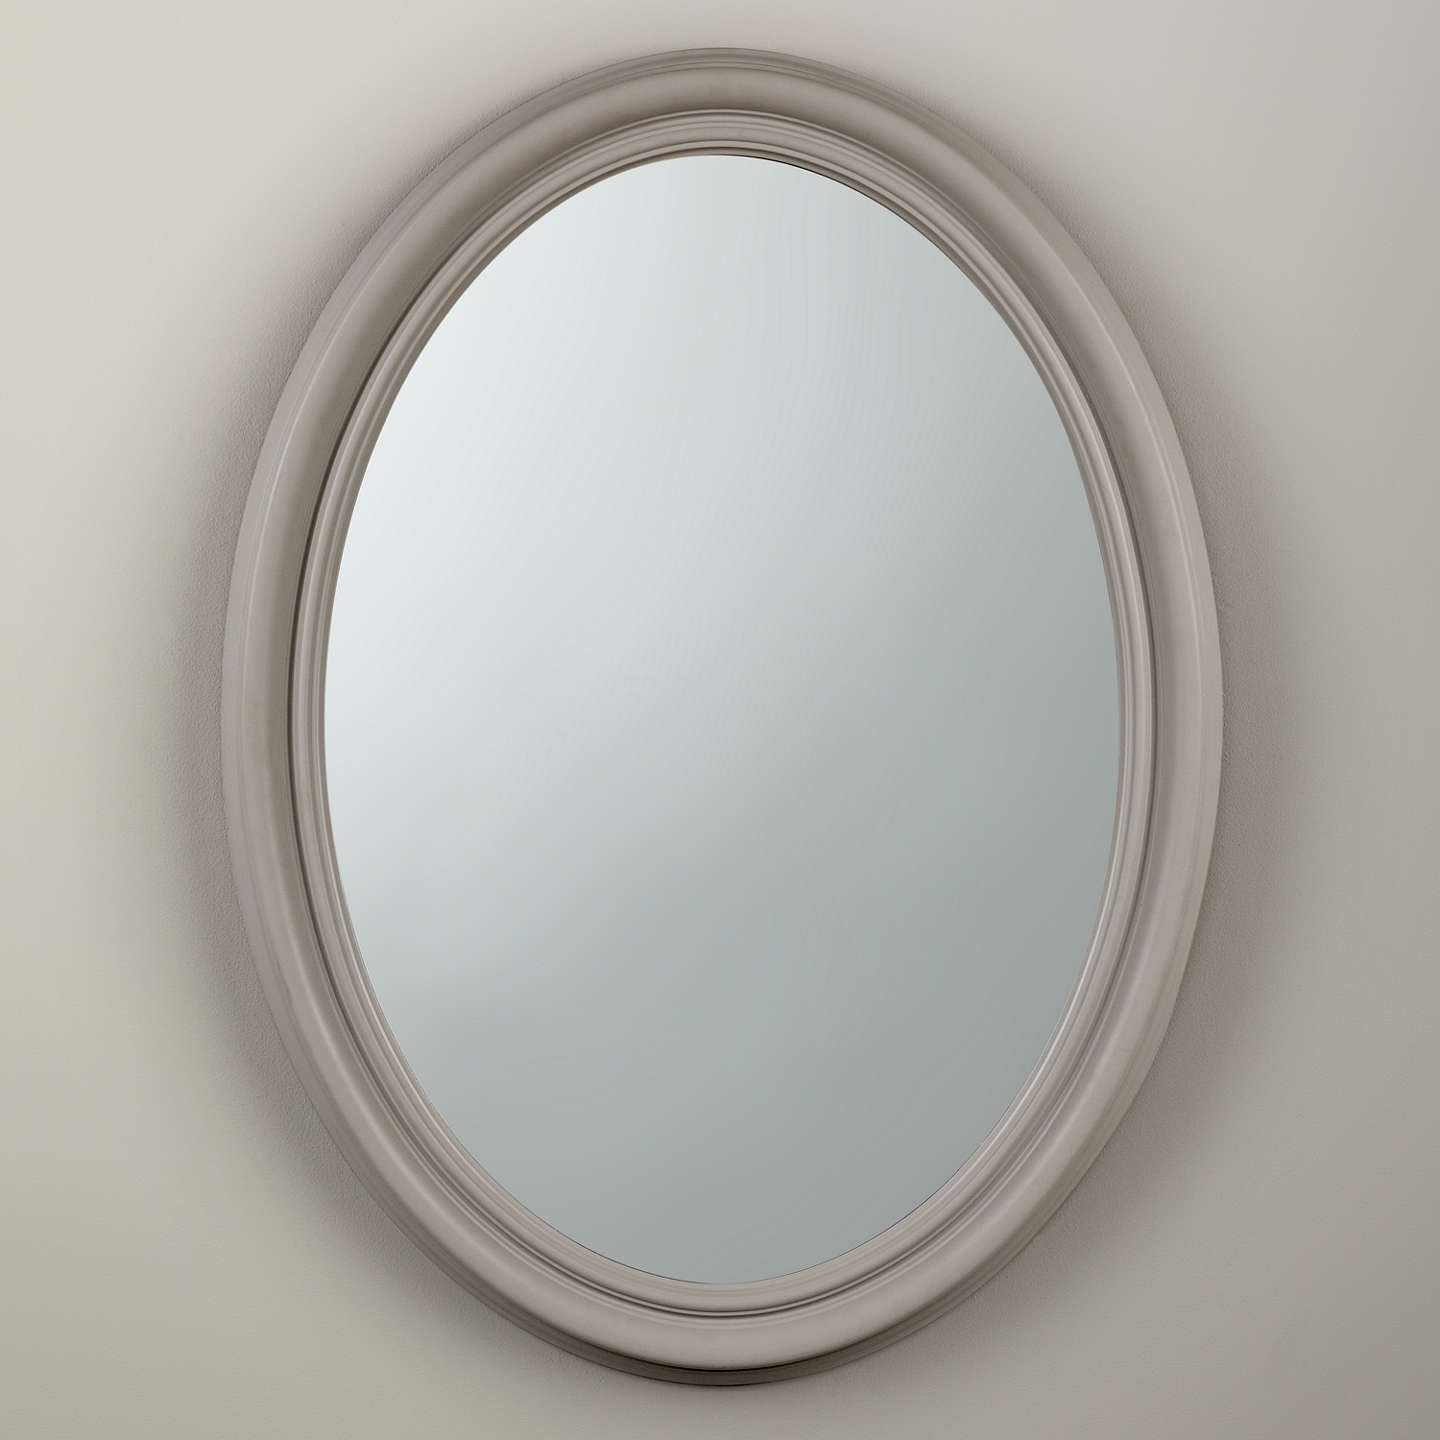 Croft collection oval medium mirror 80 x 60cm at john lewis for Mirror 80 x 60